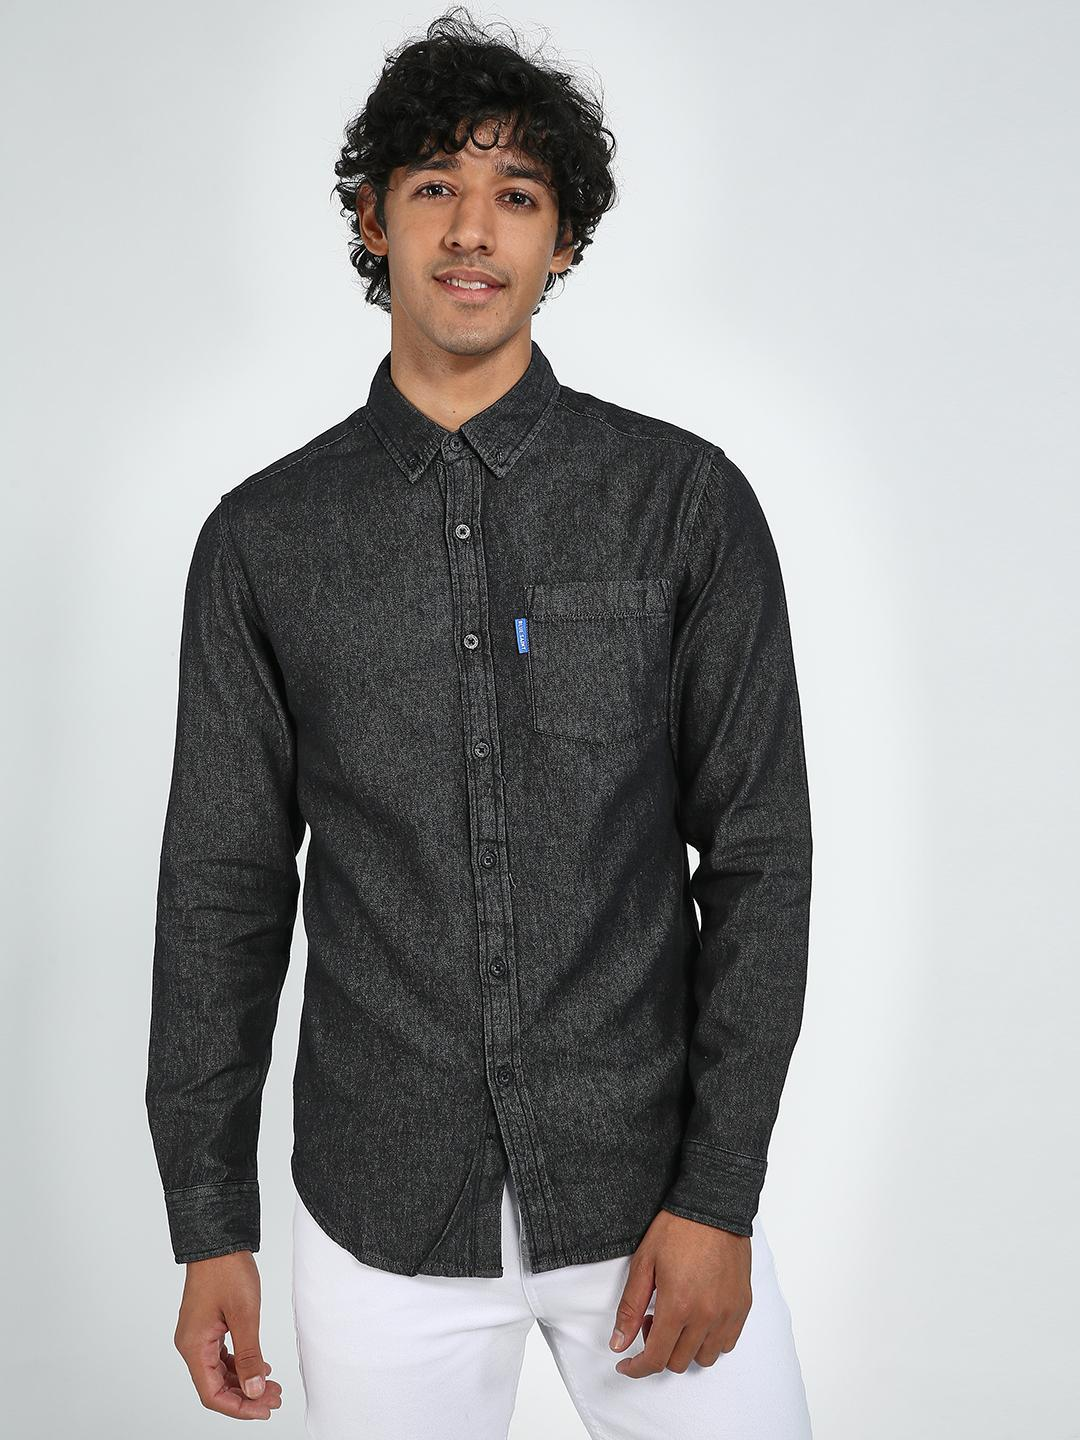 Blue Saint Black Patch Pocket Casual Shirt 1